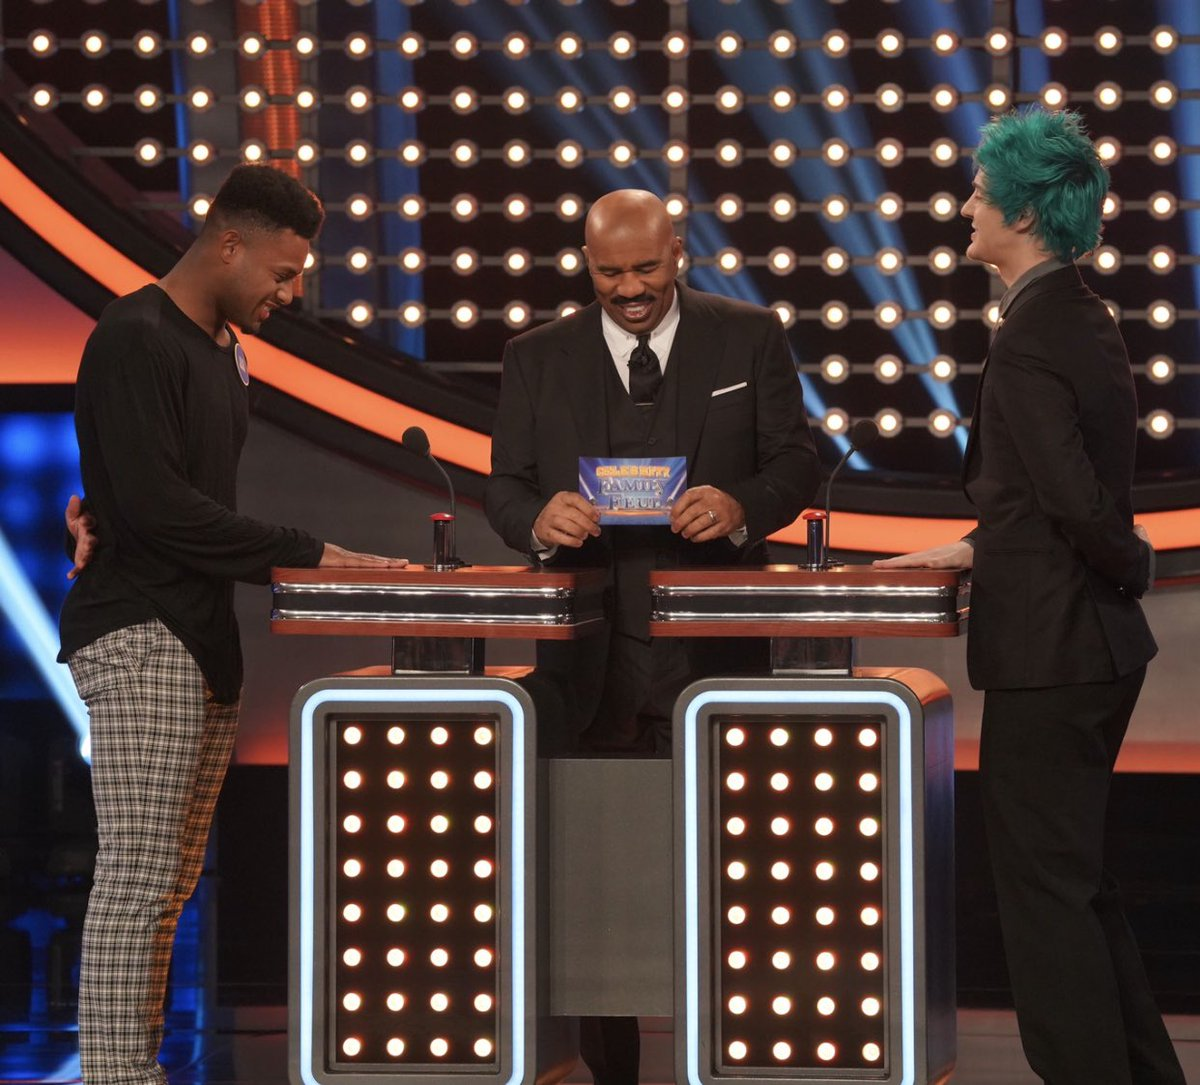 Family Feud this Sunday vs @Ninja Make sure y'all tune in!!! Who do you think won??<br>http://pic.twitter.com/38vI0ht6bz